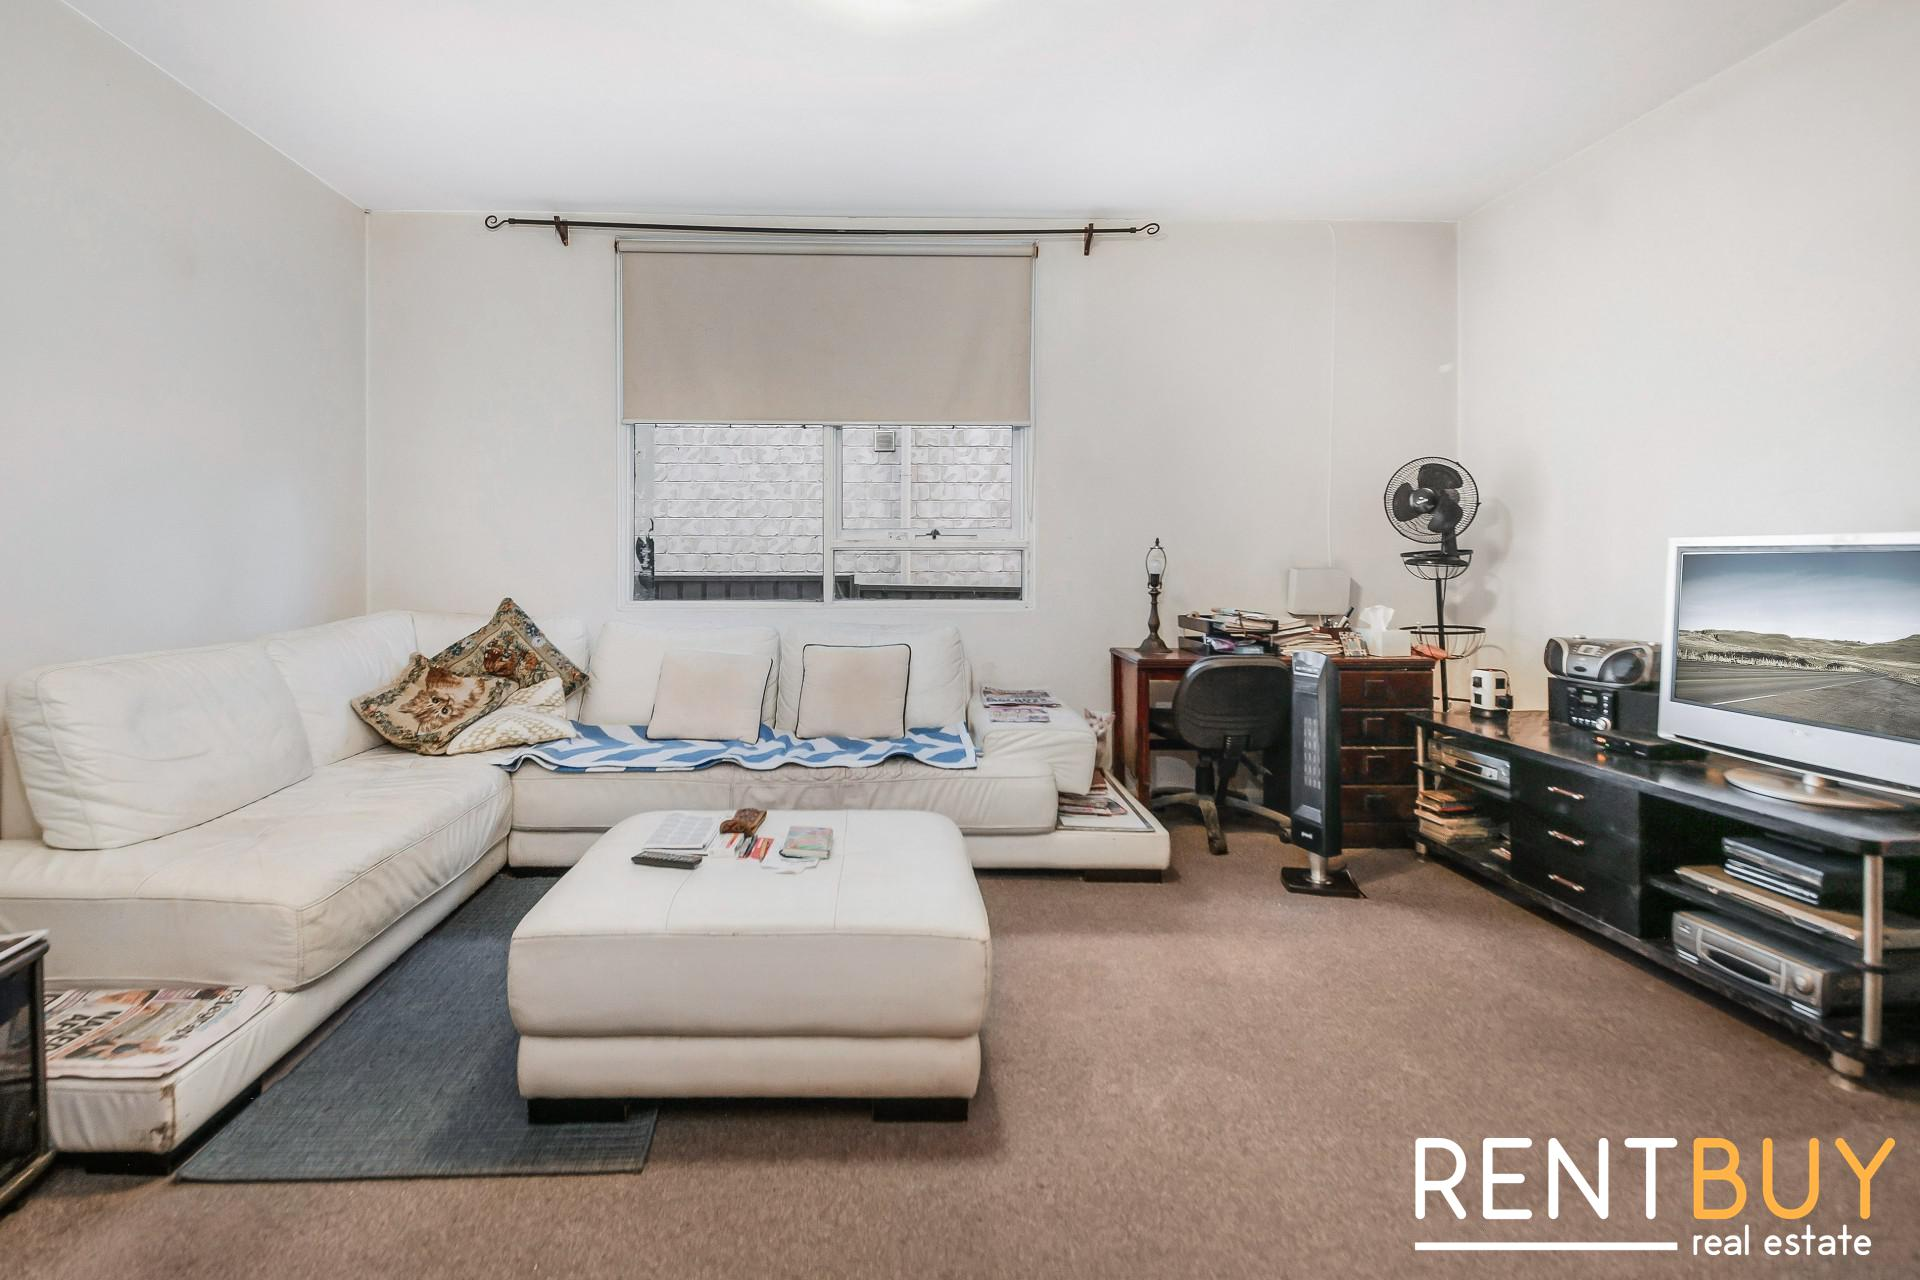 NEAT AND TIDY 2 BEDROOM UNIT